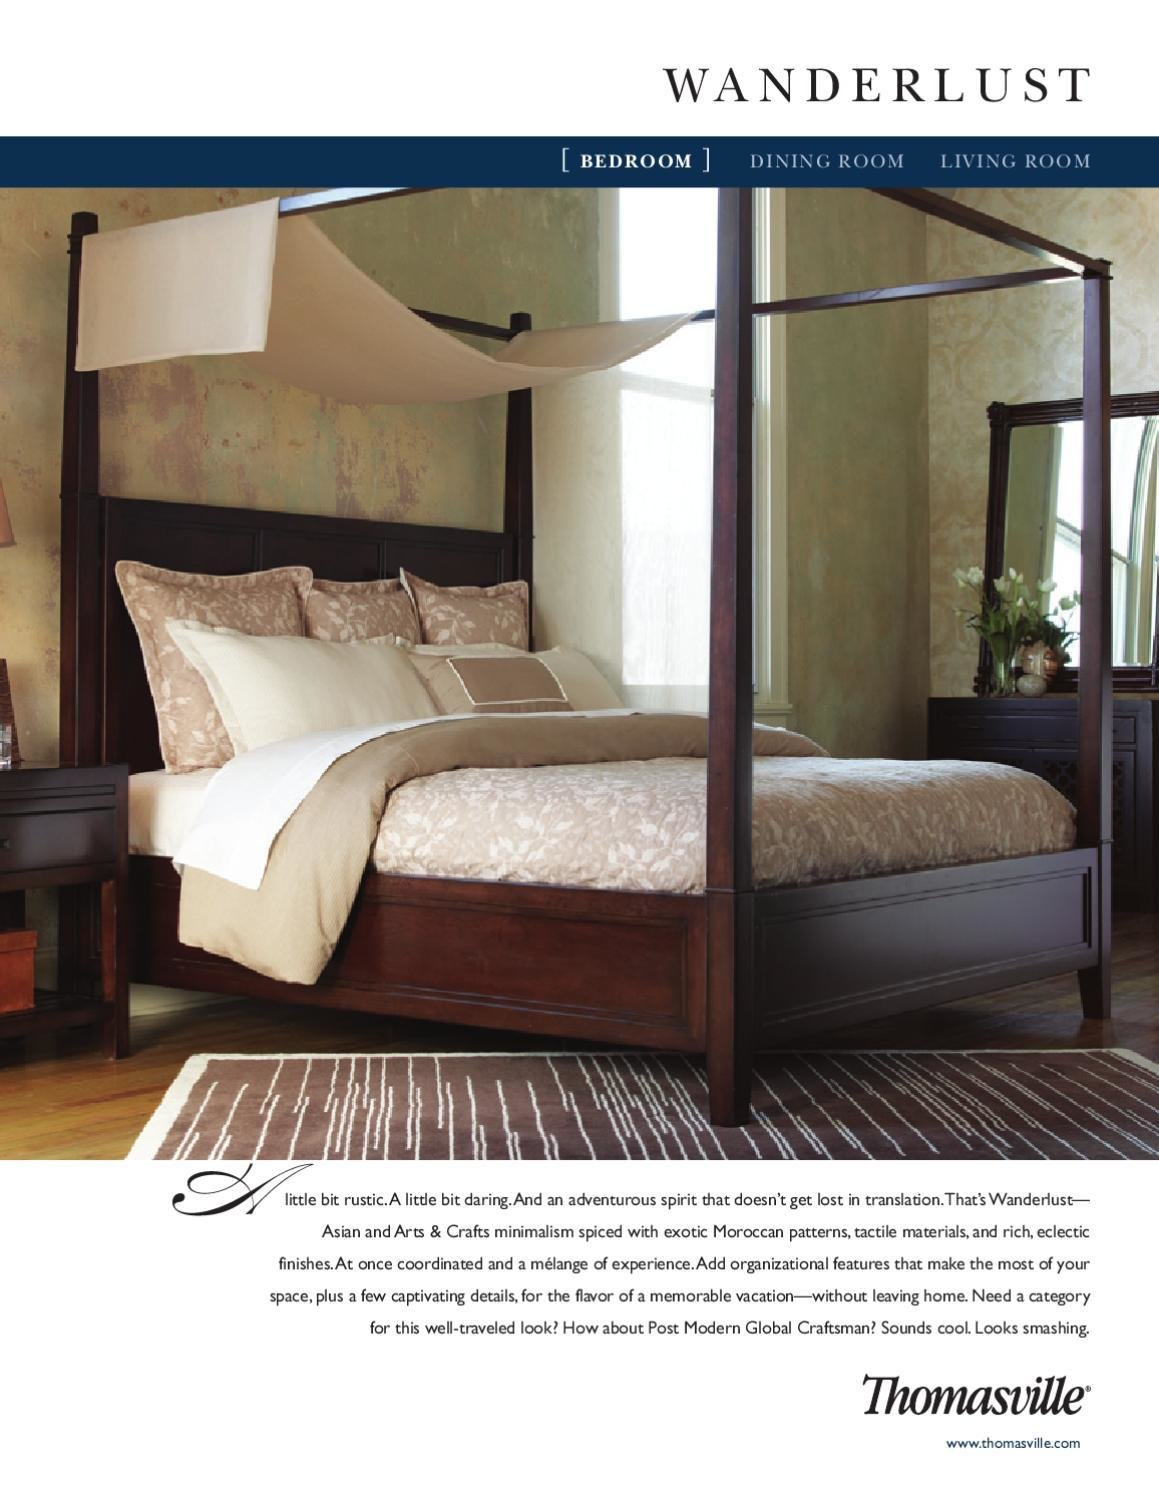 Best Thomasville Wanderlust Bedroom By Cadieux Company Issuu With Pictures